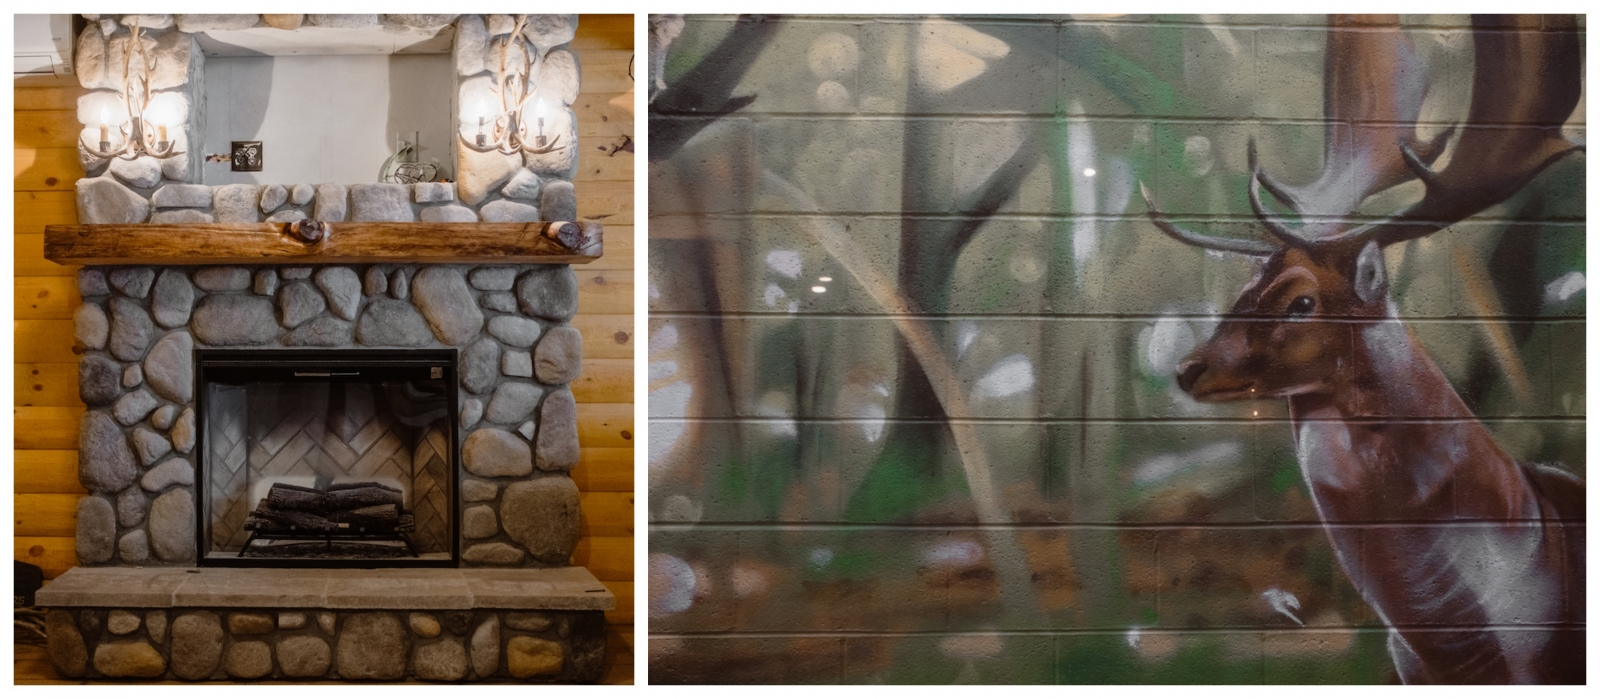 From left: The indoor scenery includes a hand-built river rock fireplace, and a view of a forest-scene outdoor mural by local artist John Horton.